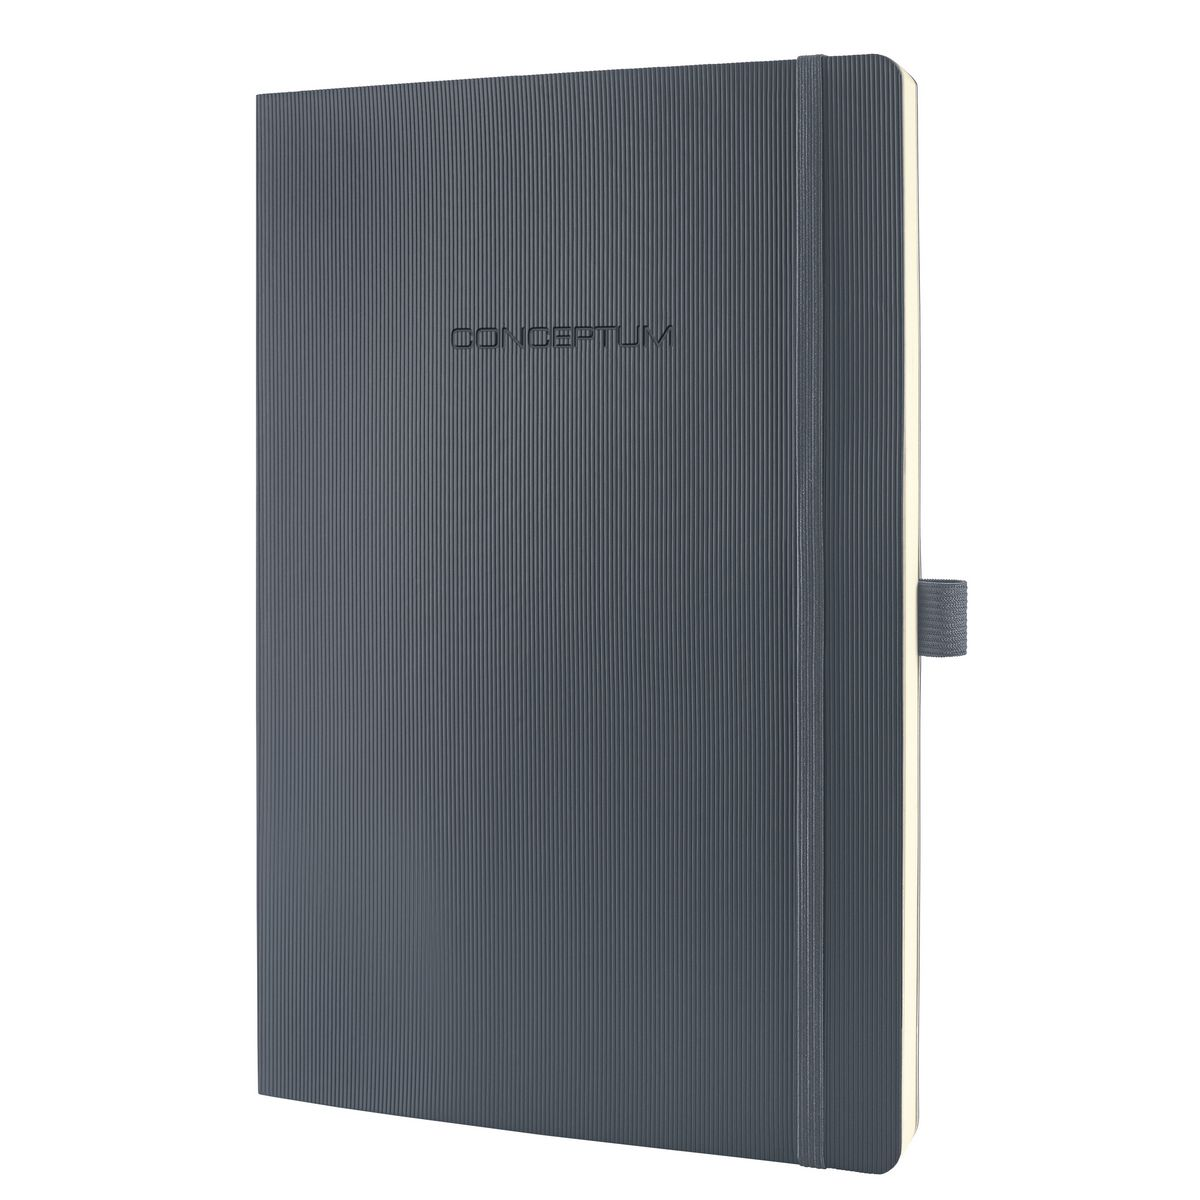 CONCEPTUM Softcover 187x270x14mm GY